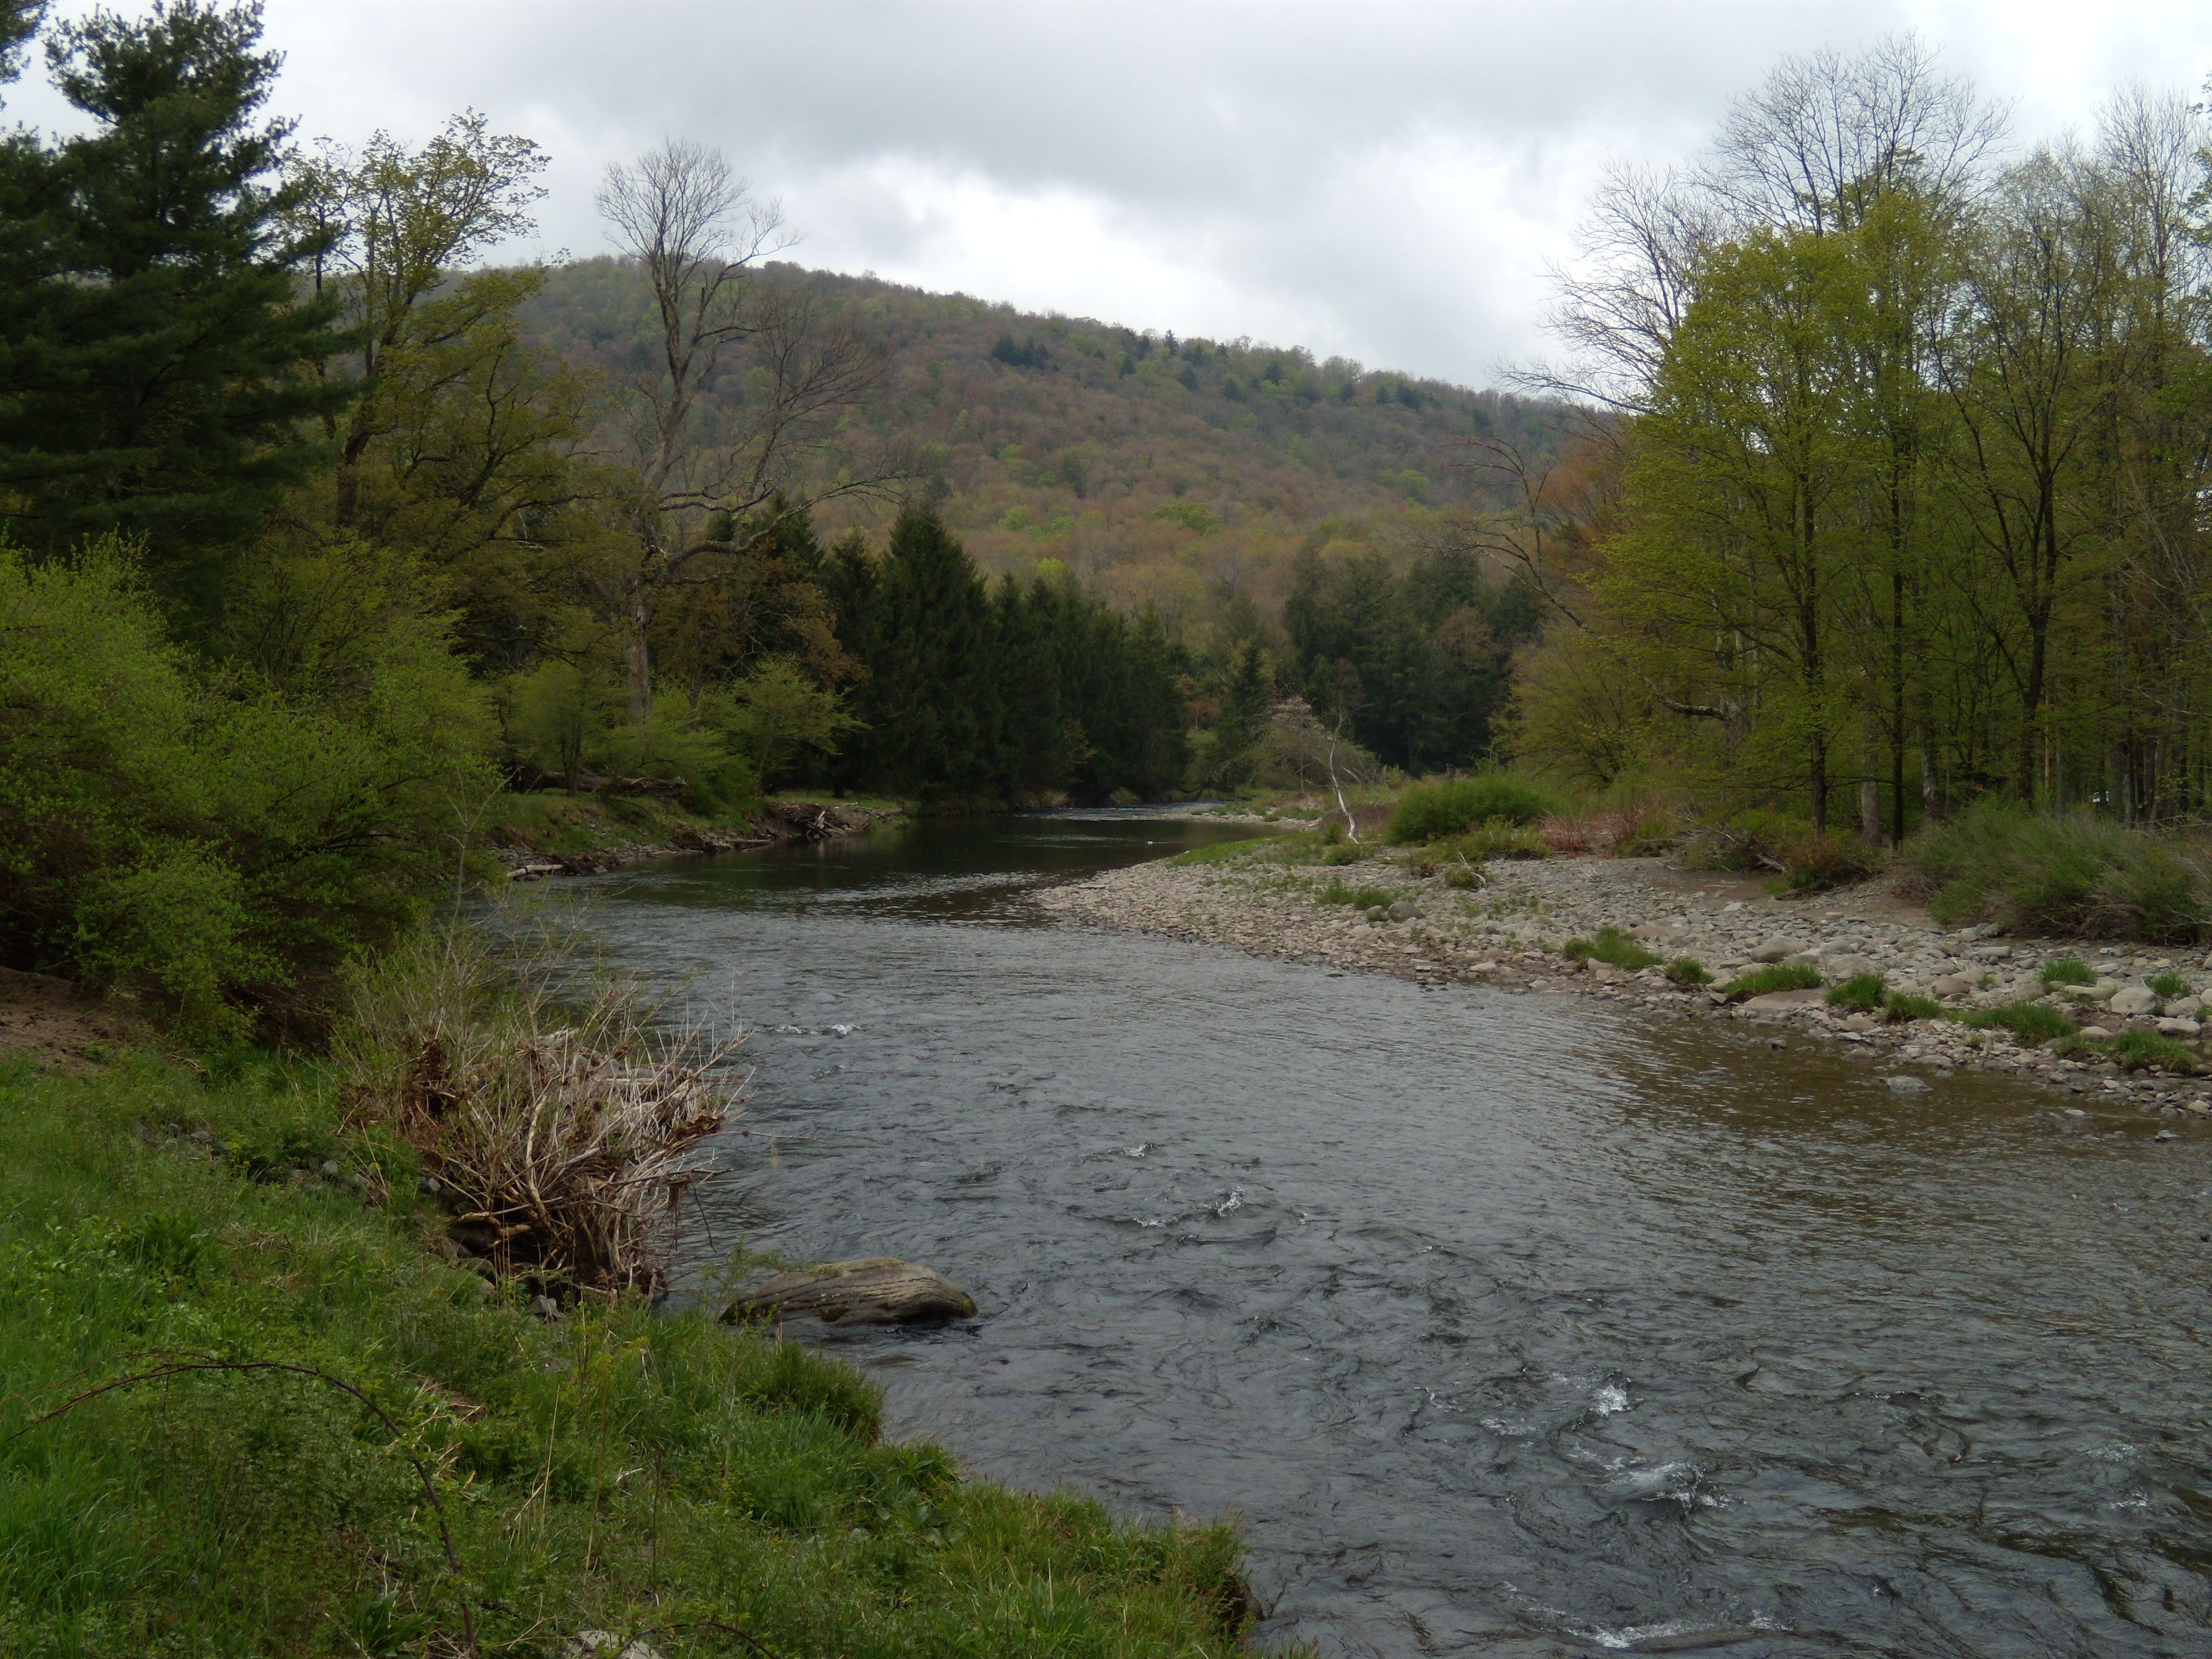 Beaverkill river at beaverkill campground nysdec for Roscoe ny fishing